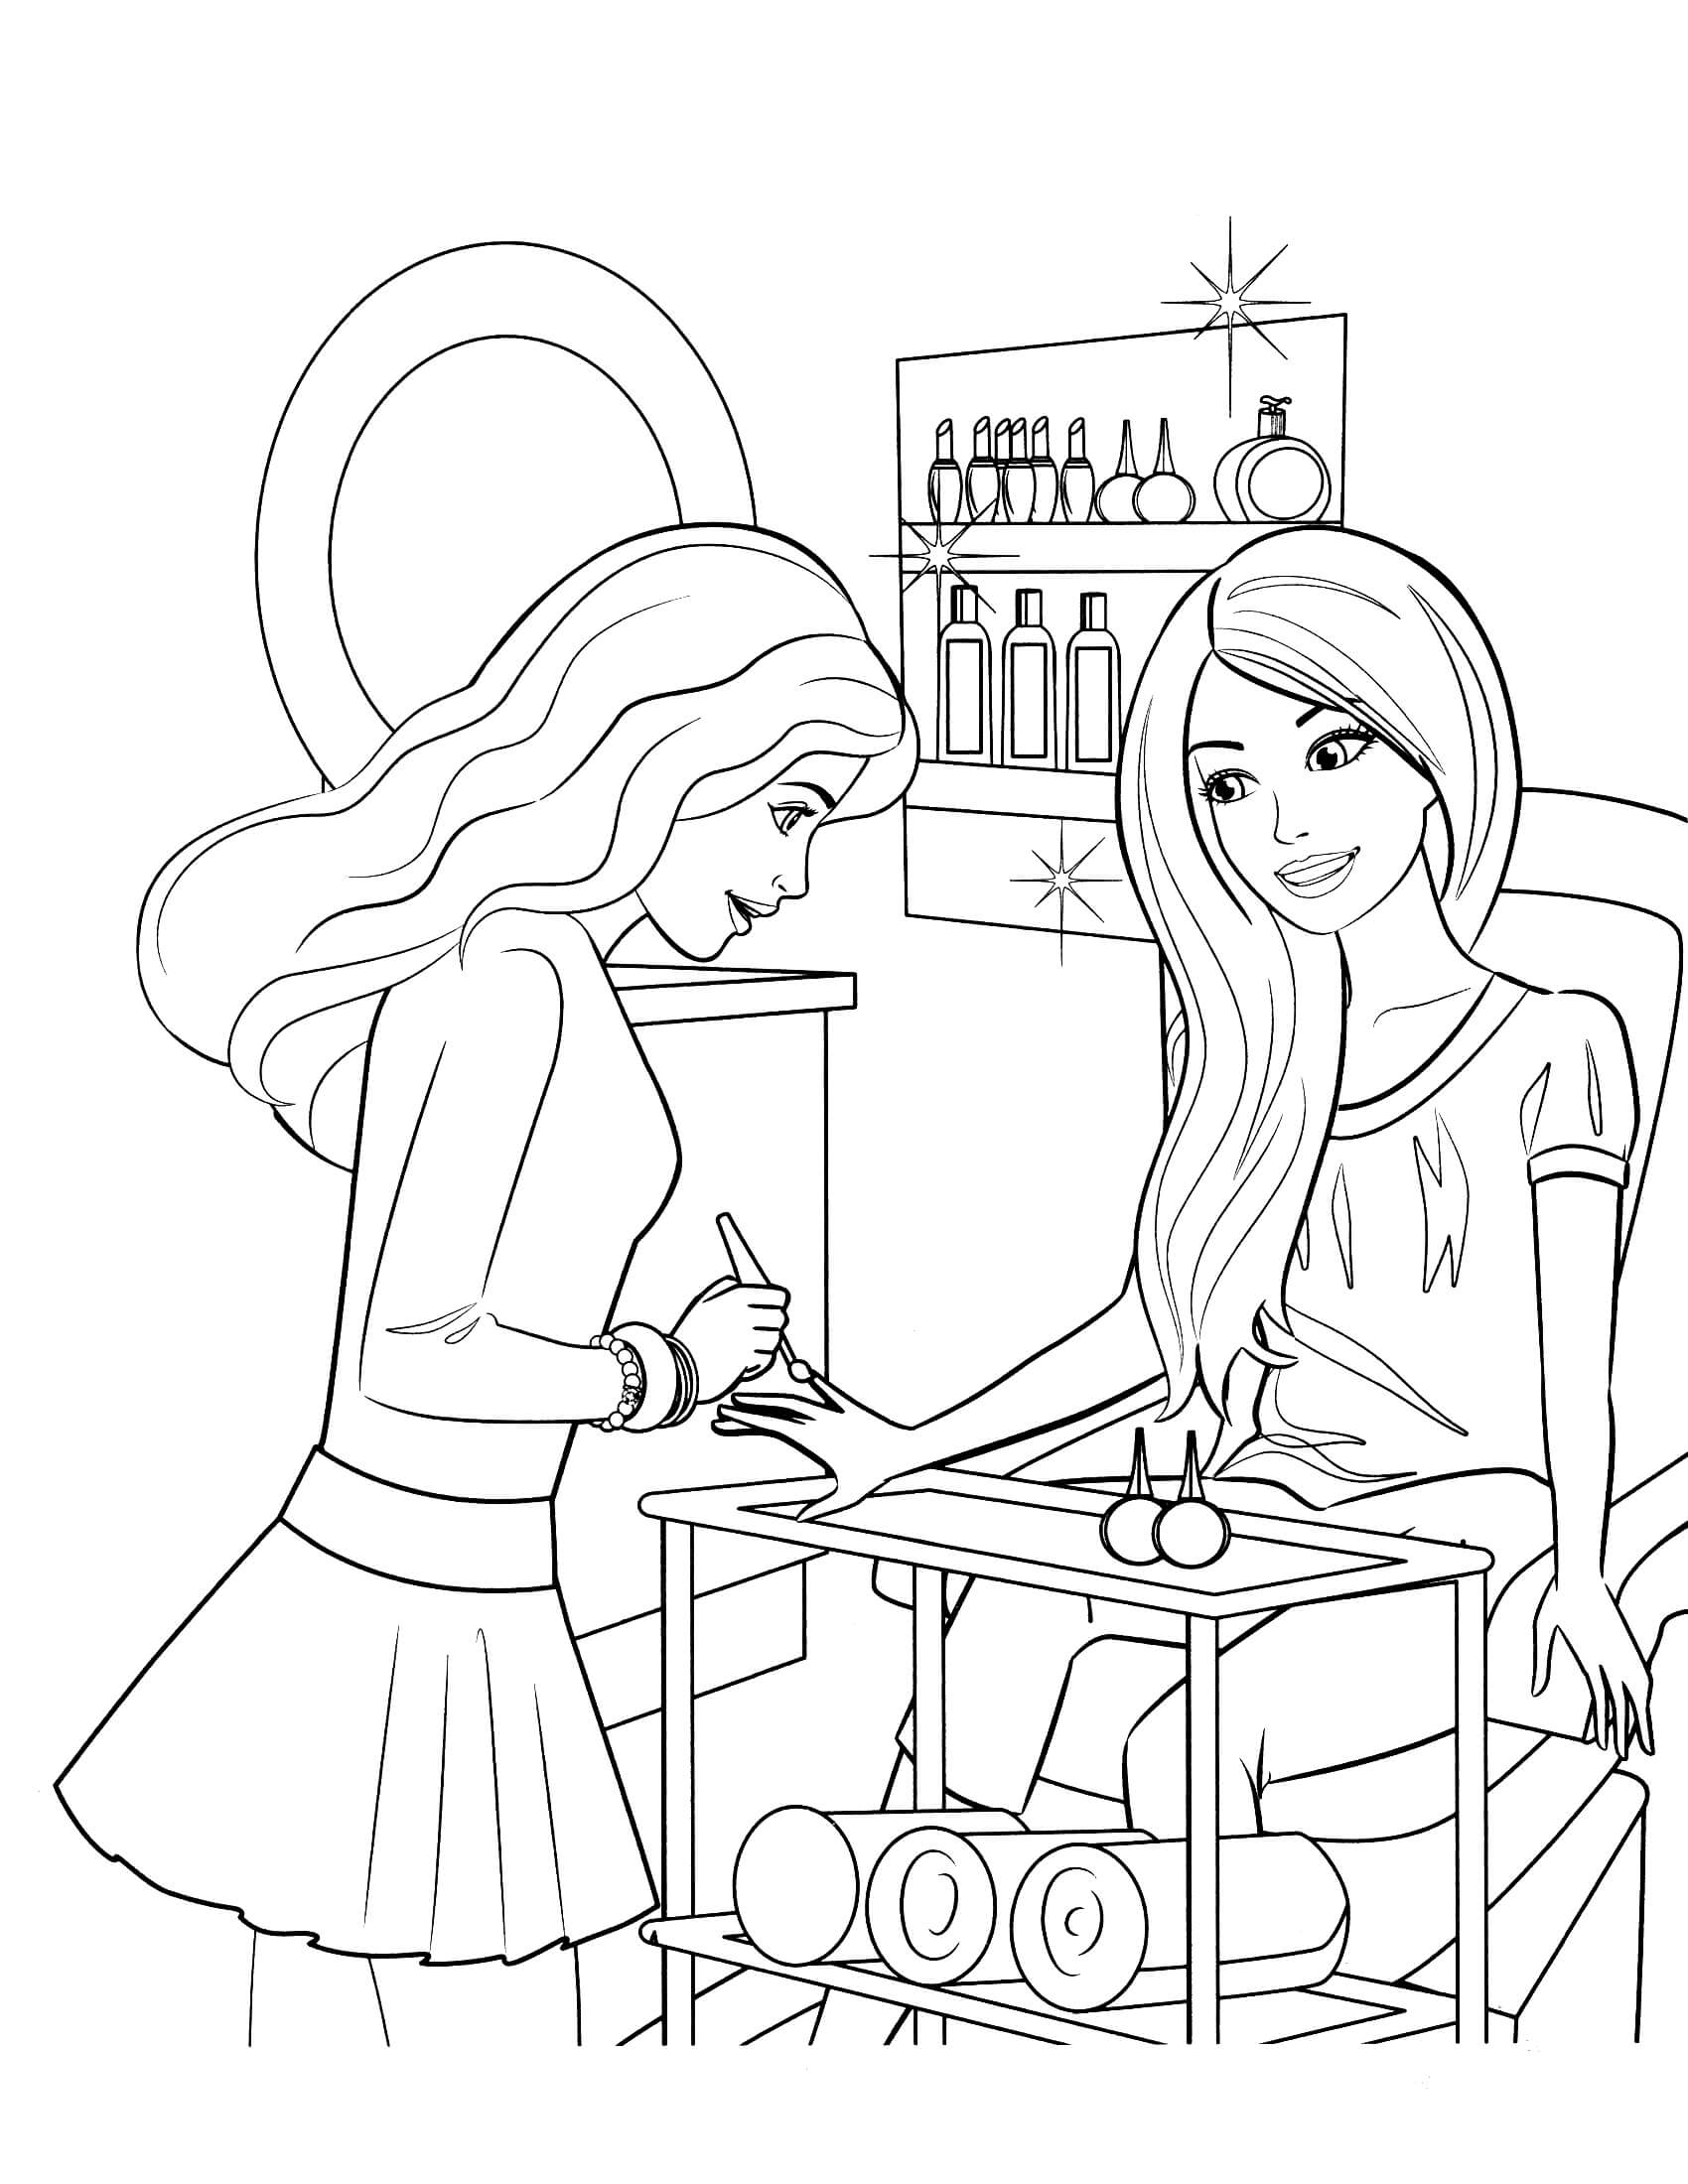 barbie printables 85 barbie coloring pages for girls barbie princess barbie printables